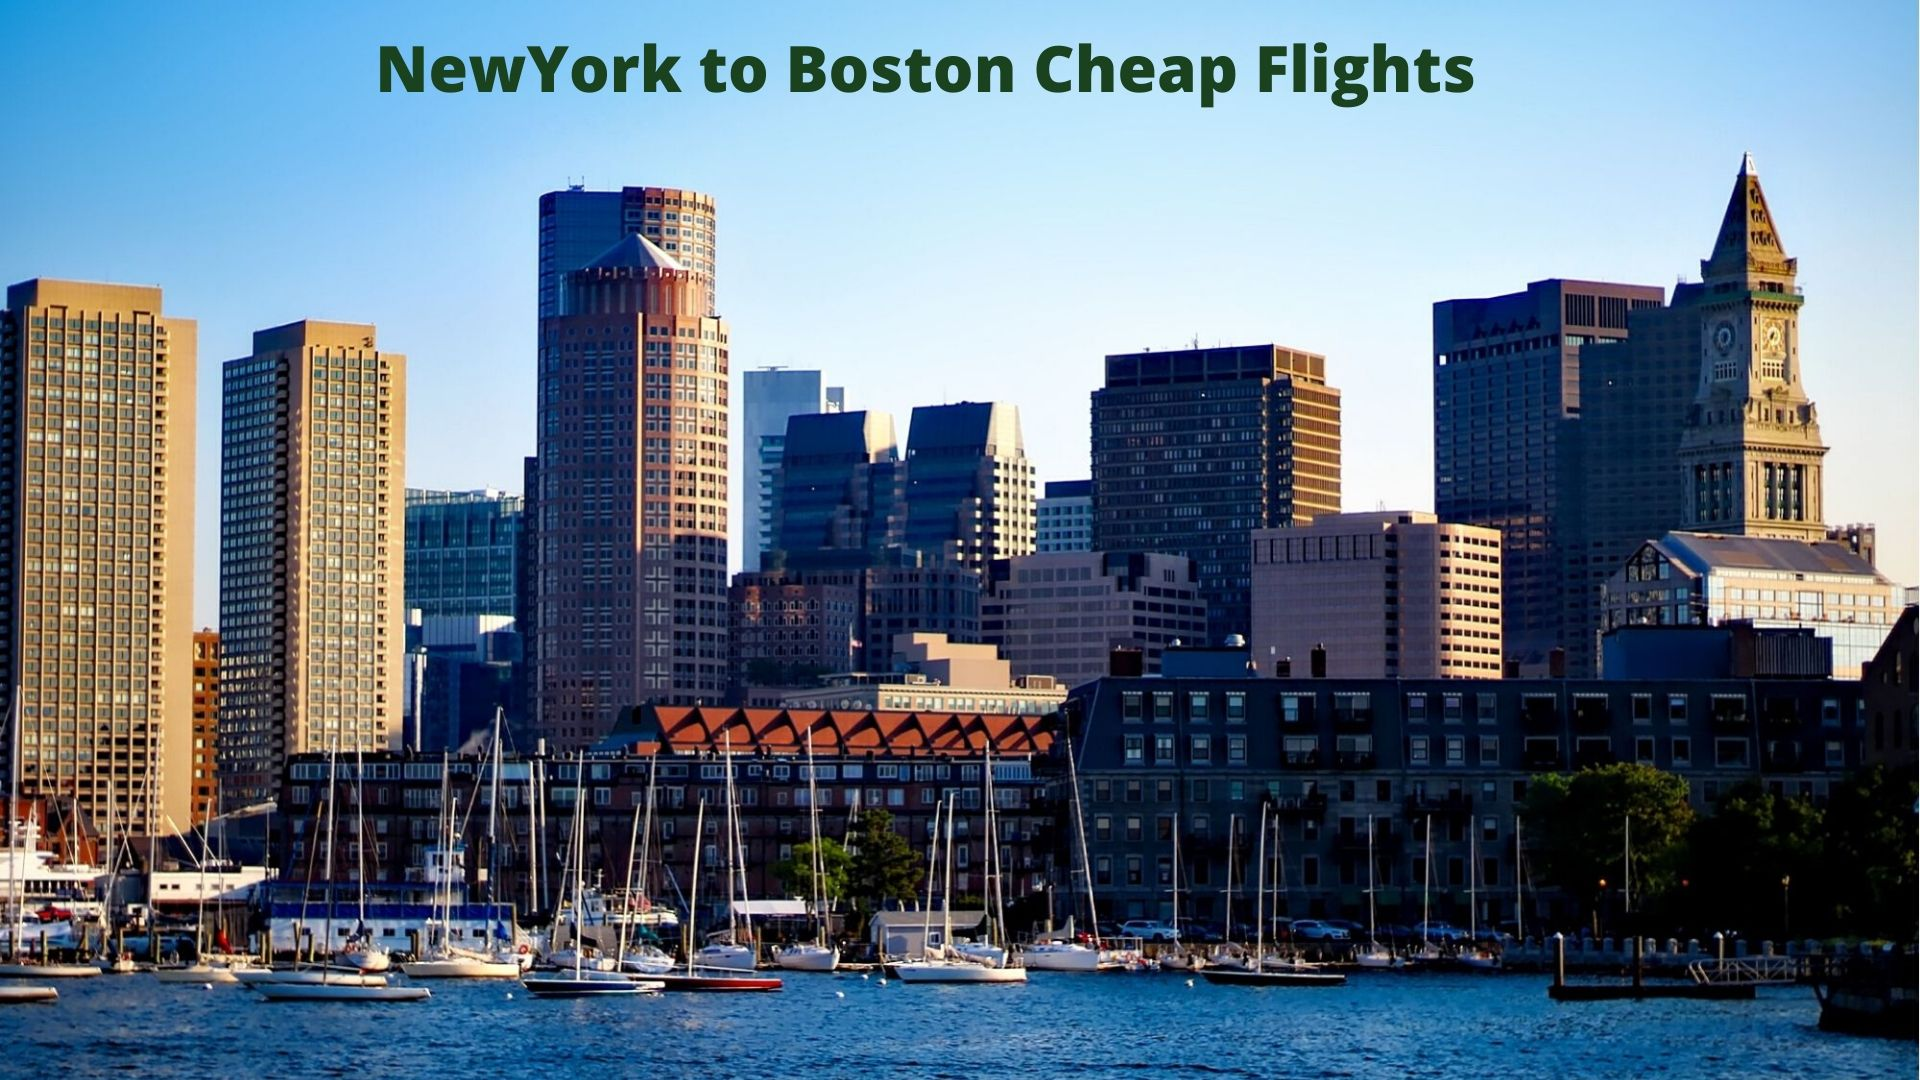 NewYork to Boston Cheap Flights.jpg